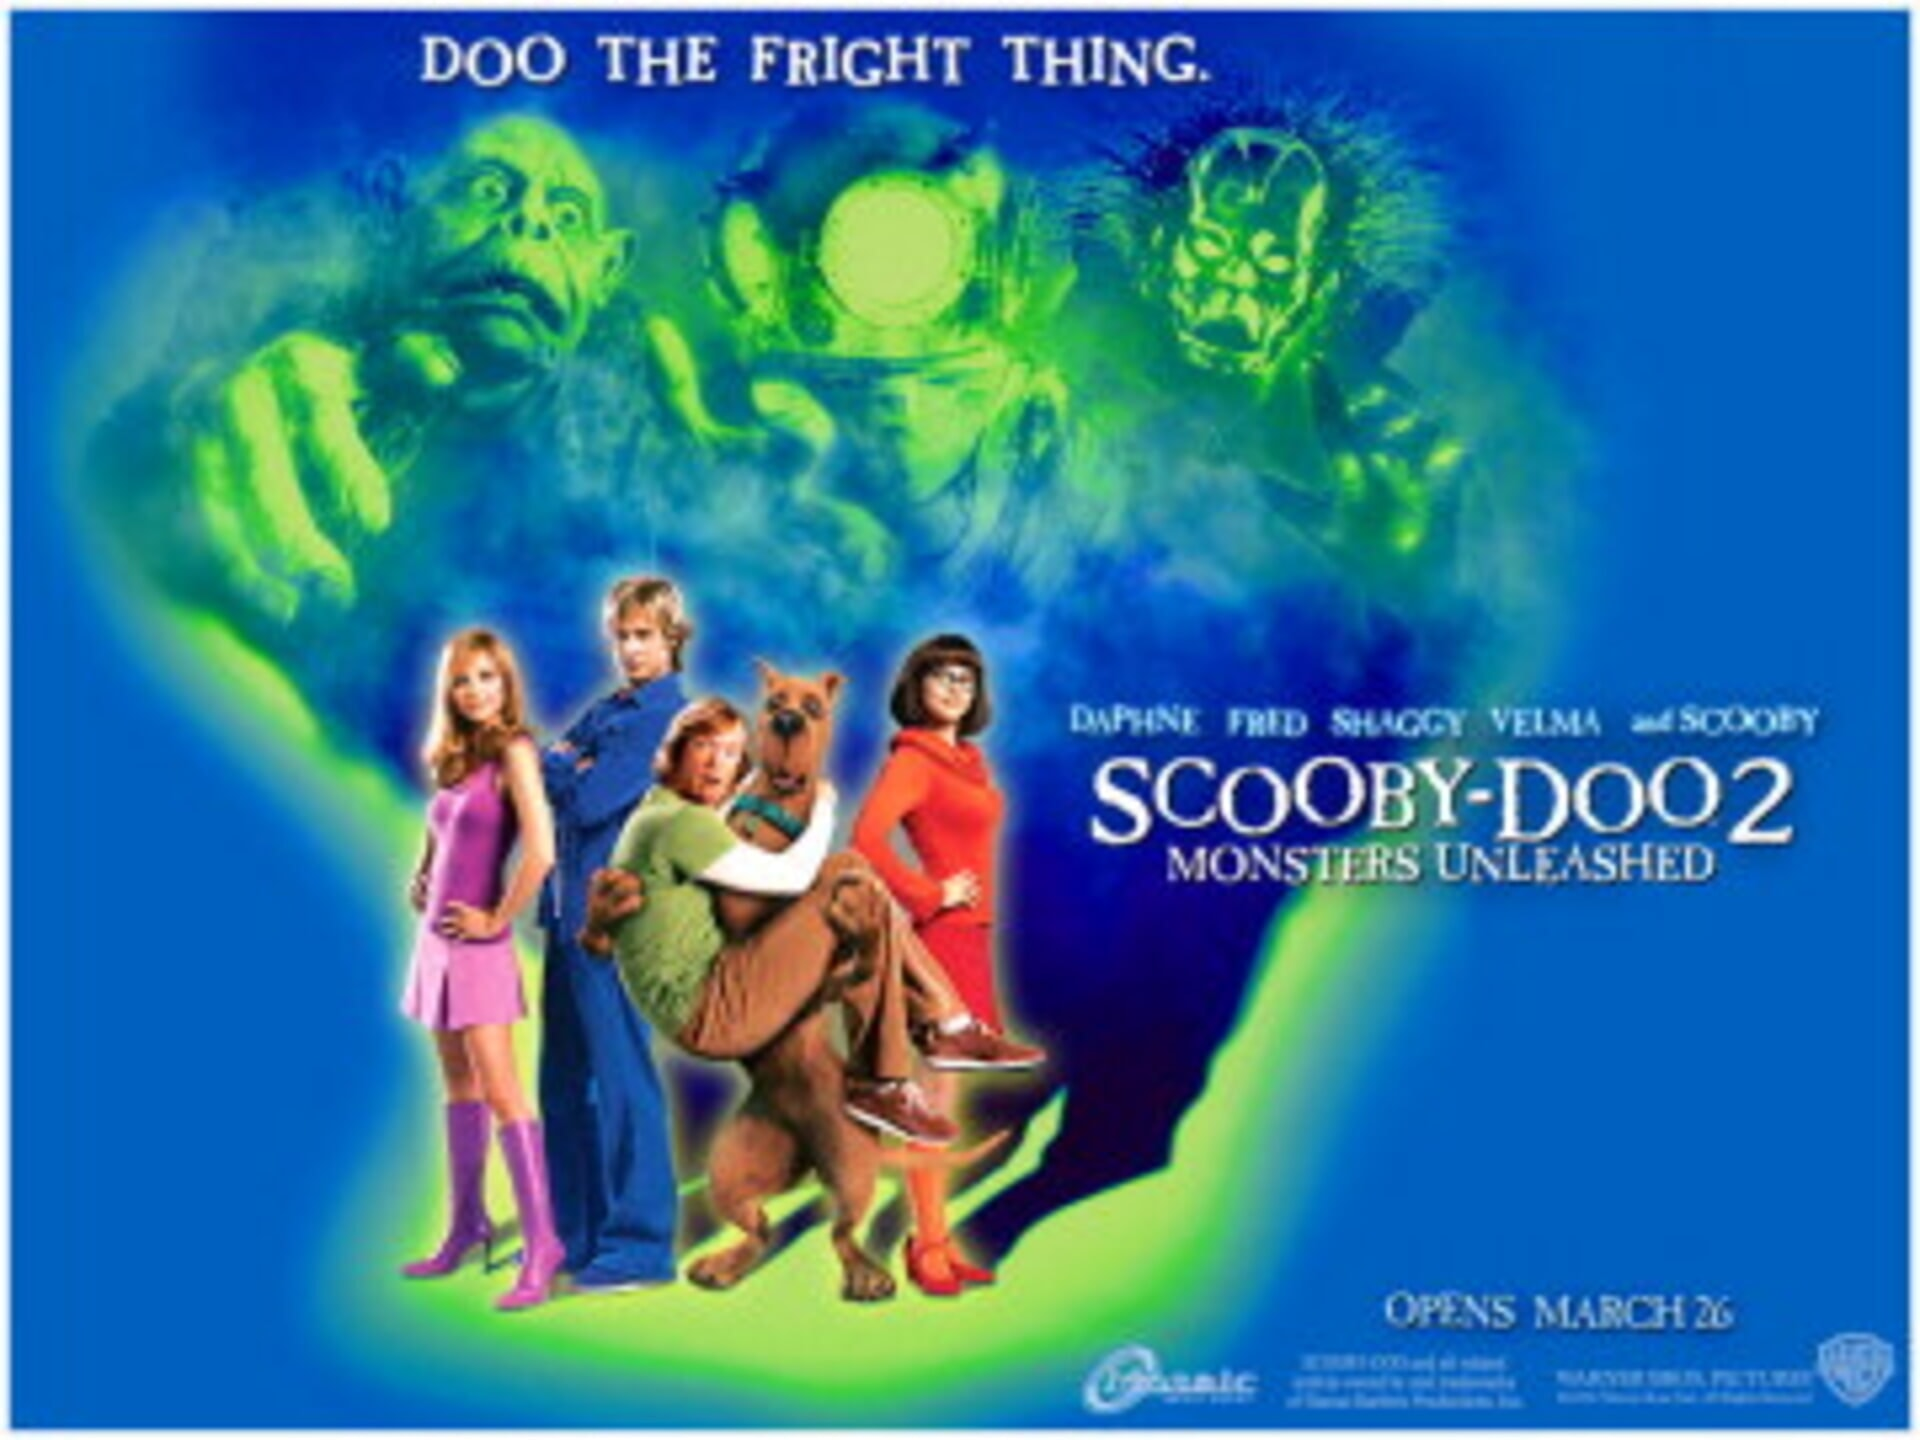 Scooby-doo 2: Monsters Unleashed - Image 30